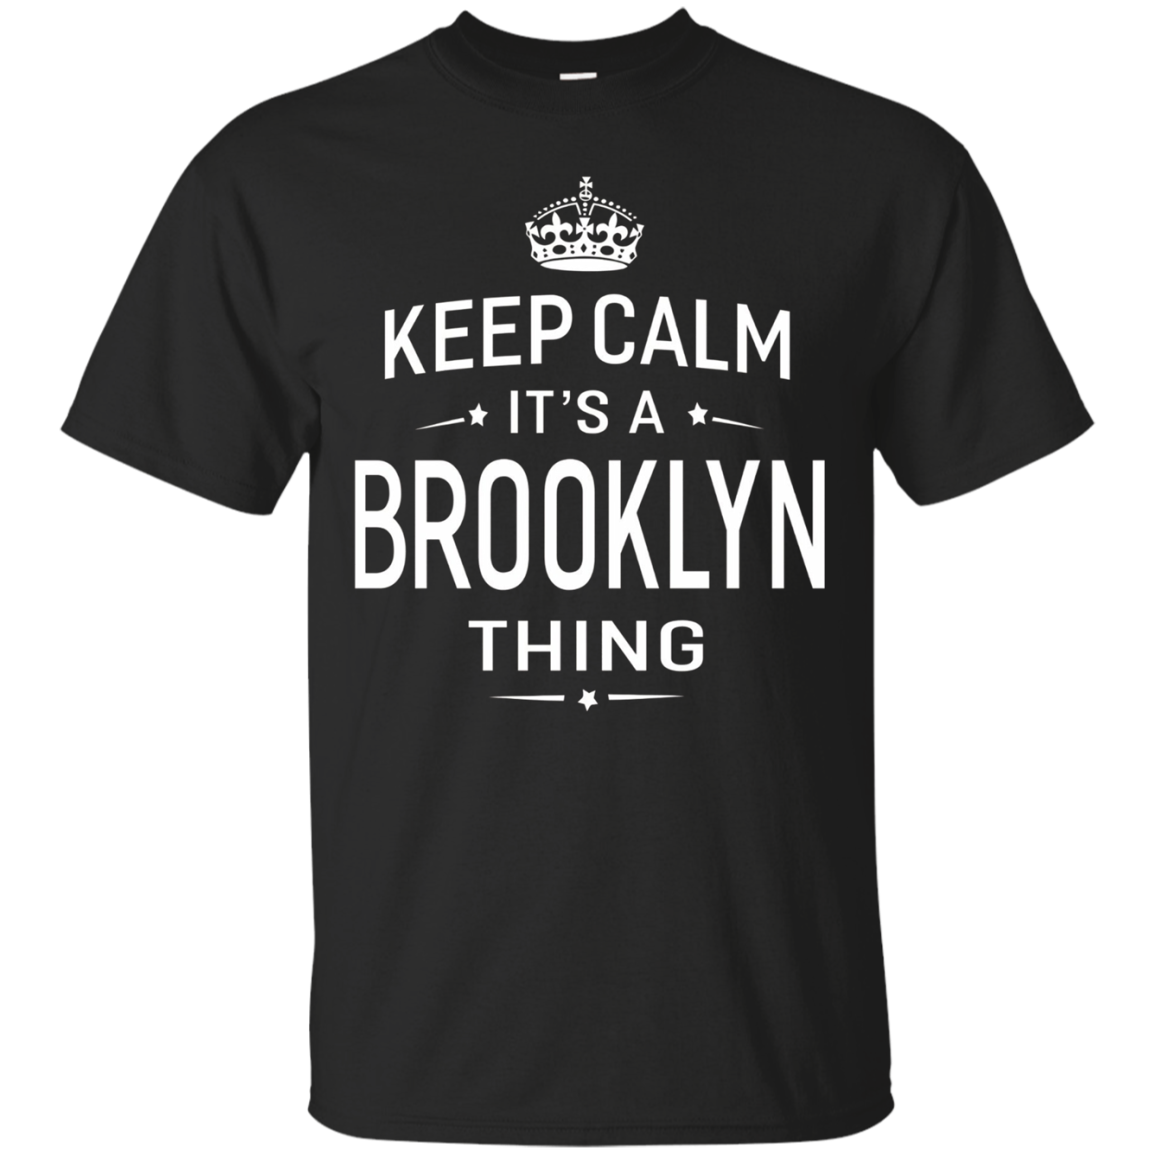 Keep Calm It's Brooklyn Thing Funny Gifts Name T-Shirt Women